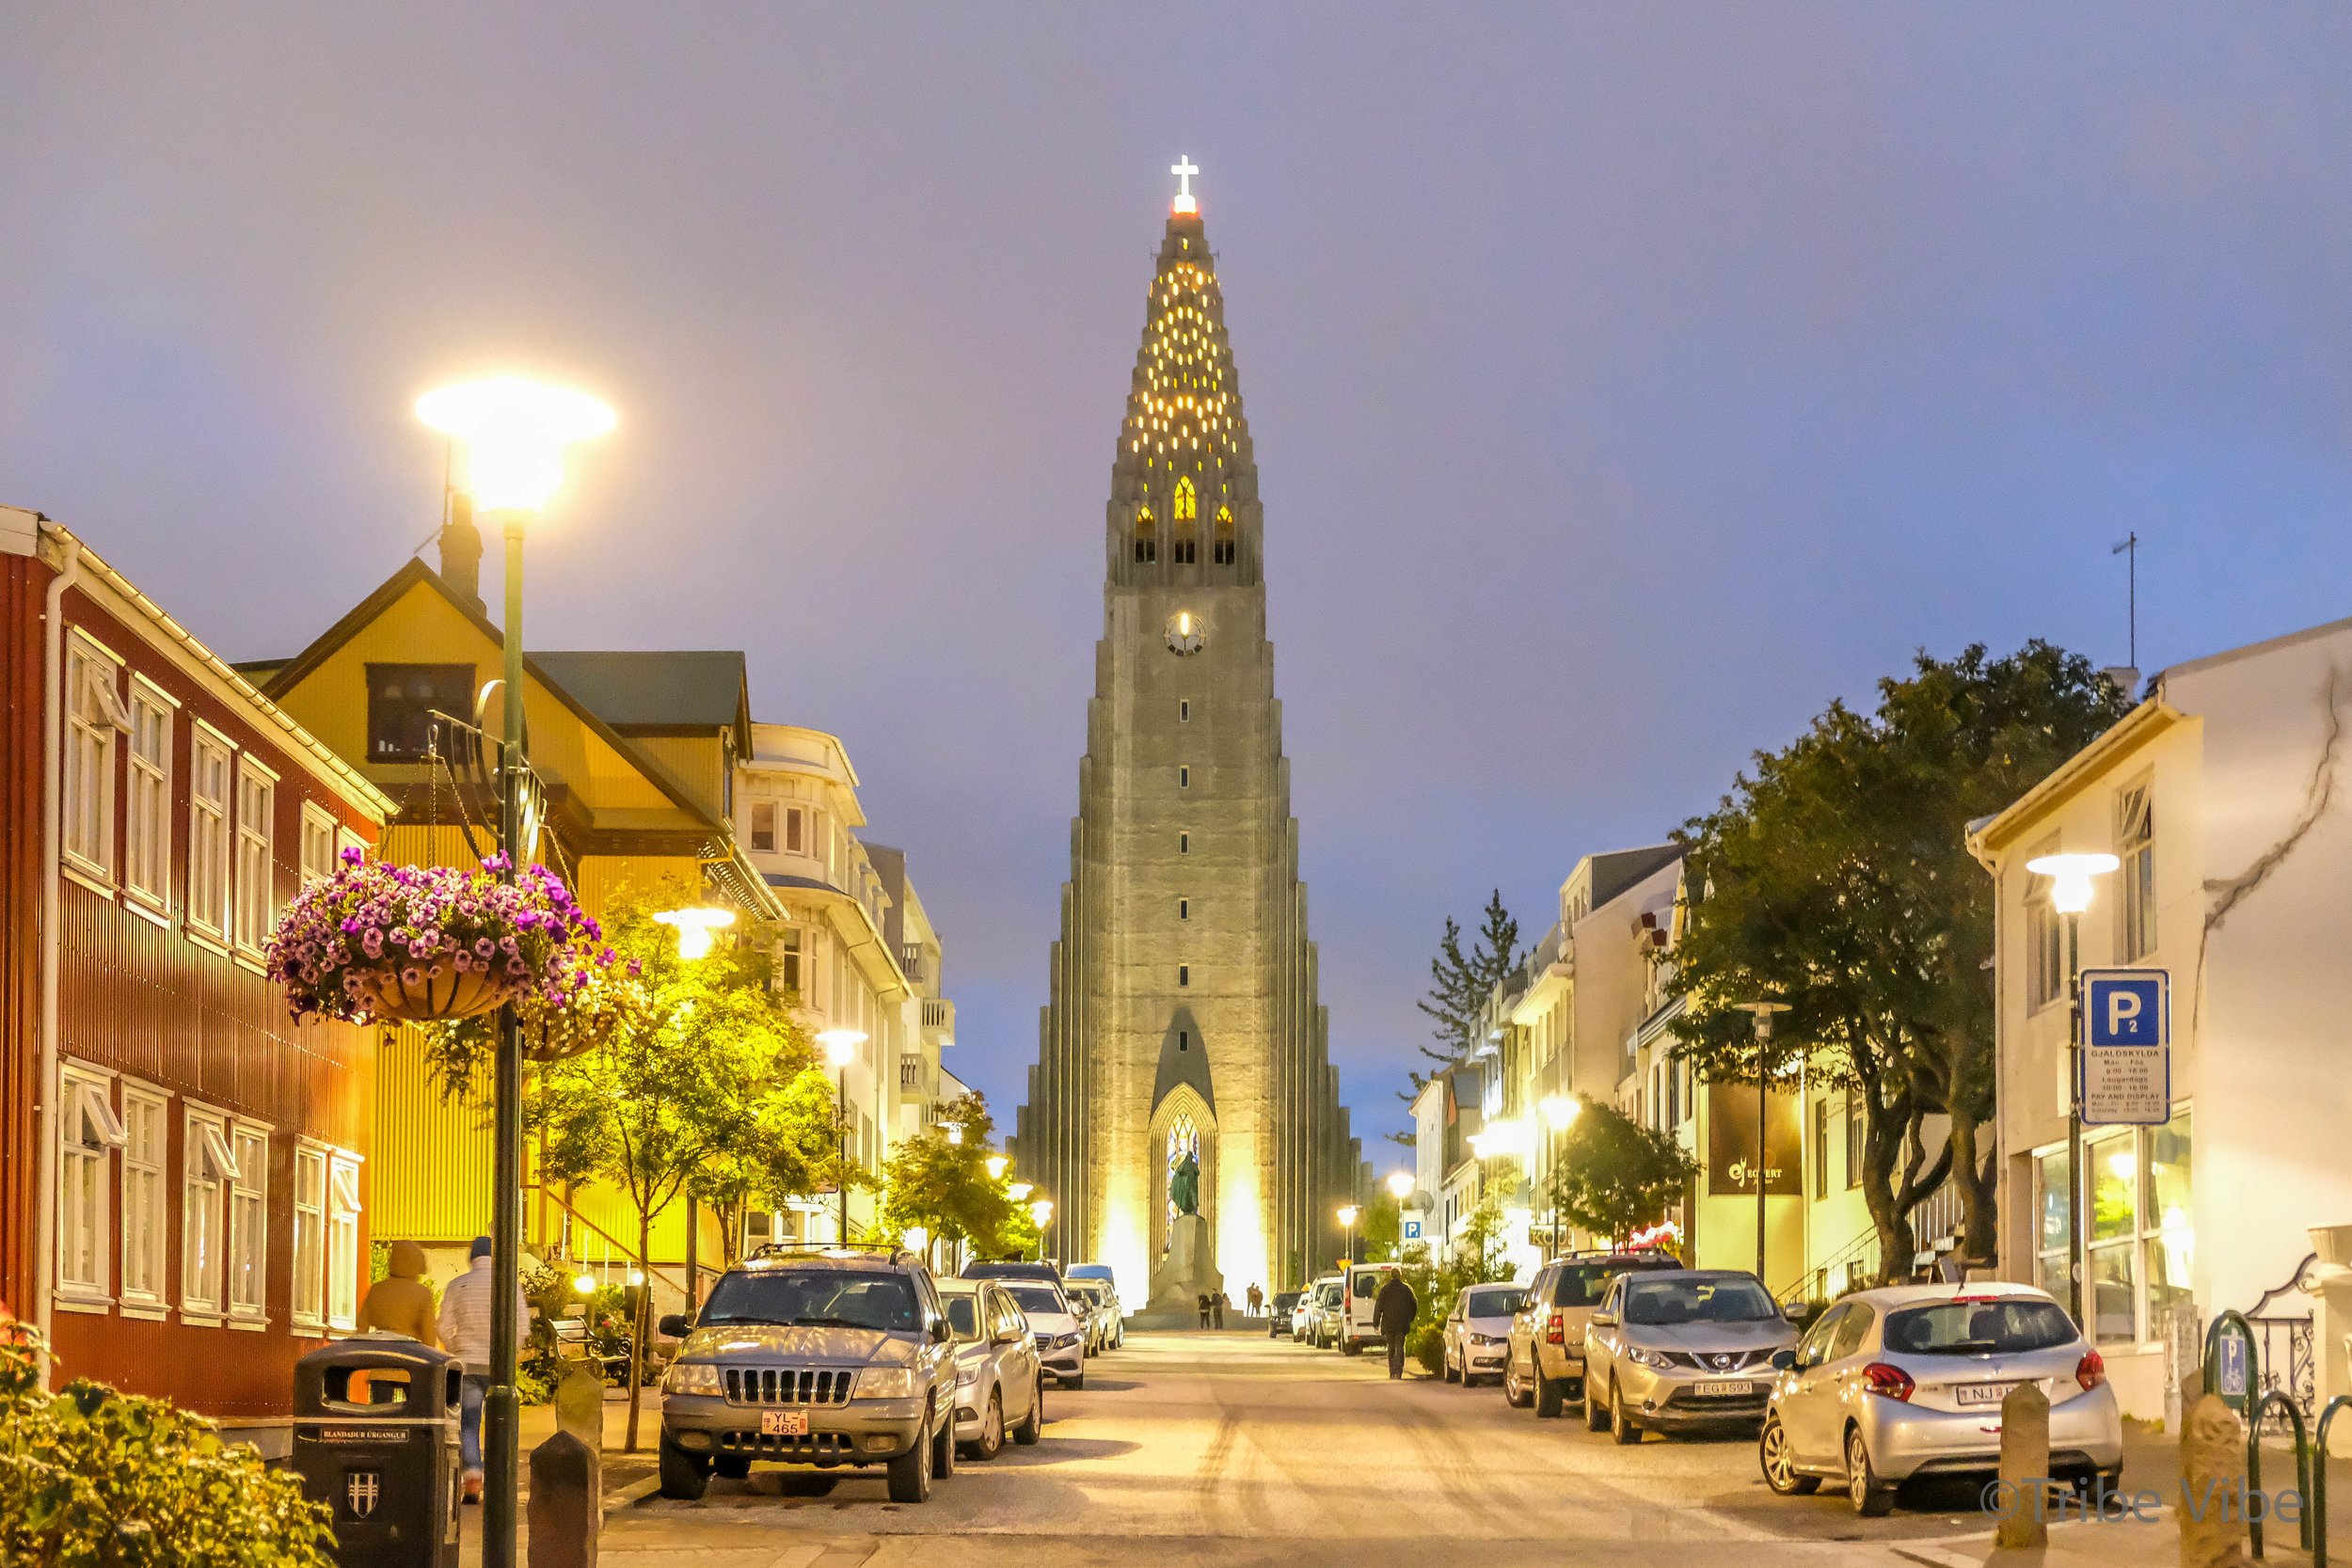 Hallgrimskirkja Church by night